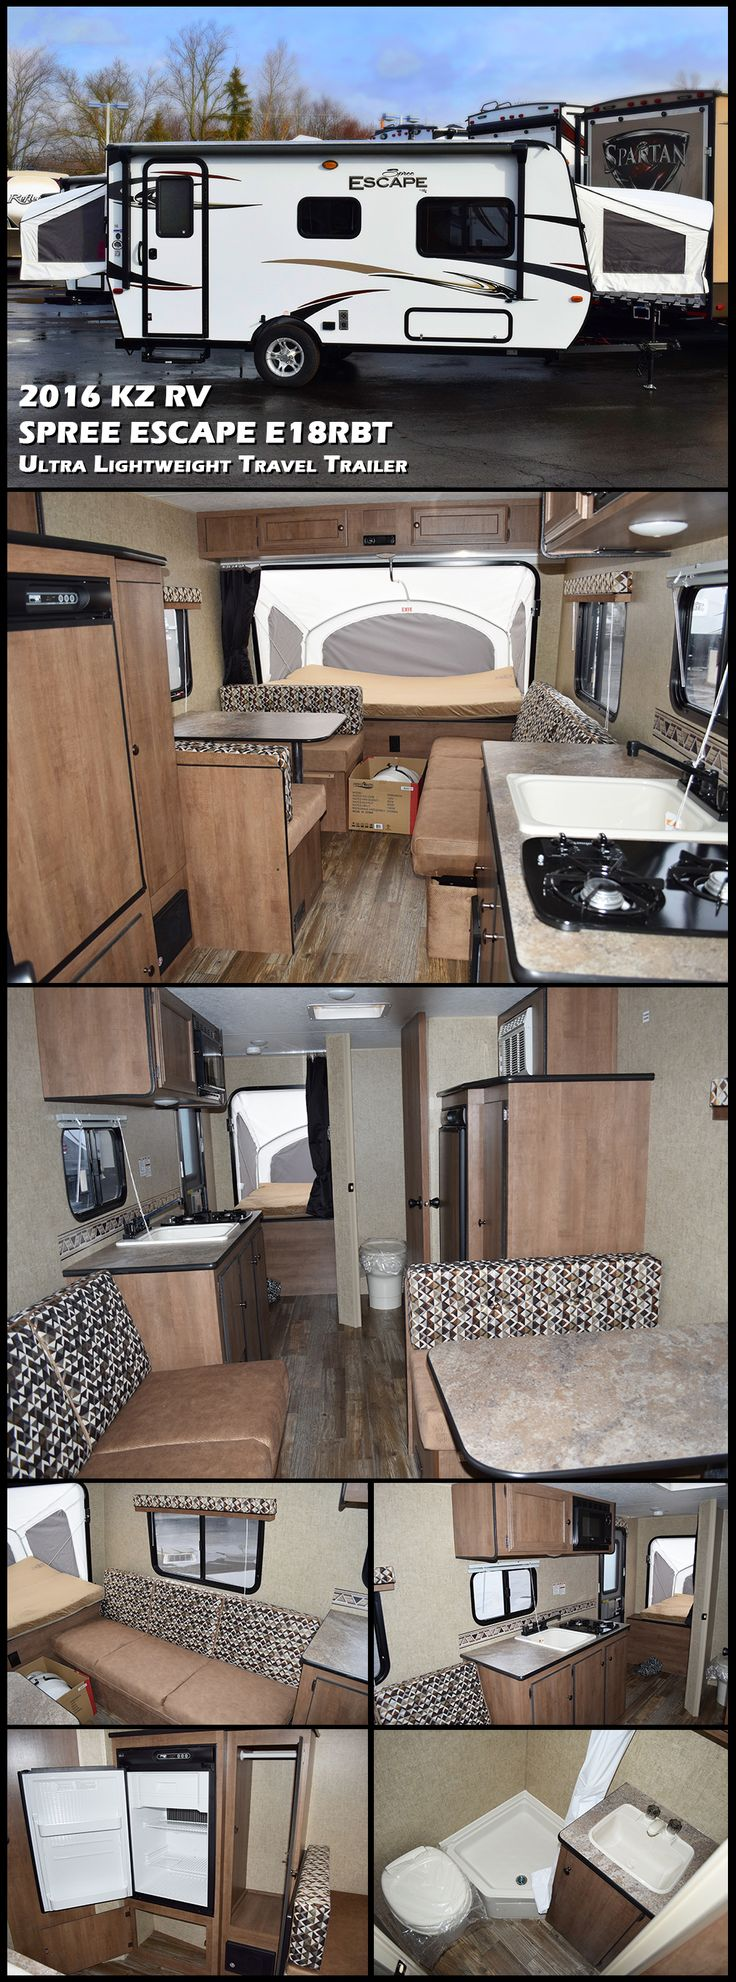 "The 2016 KZ RV SPREE ESCAPE E18RBT Travel Trailer offers the perfect way to enjoy your own weekend ""escape"". You'll find this E18RBT expandable trailer to be spacious from end-to-end. With plenty of storage both inside and out which allows you to pack everything you need. The kitchen and complete bath make extended get-a-ways seem just like home. With its light-weight design the Escape can even be towed with a mini-van."